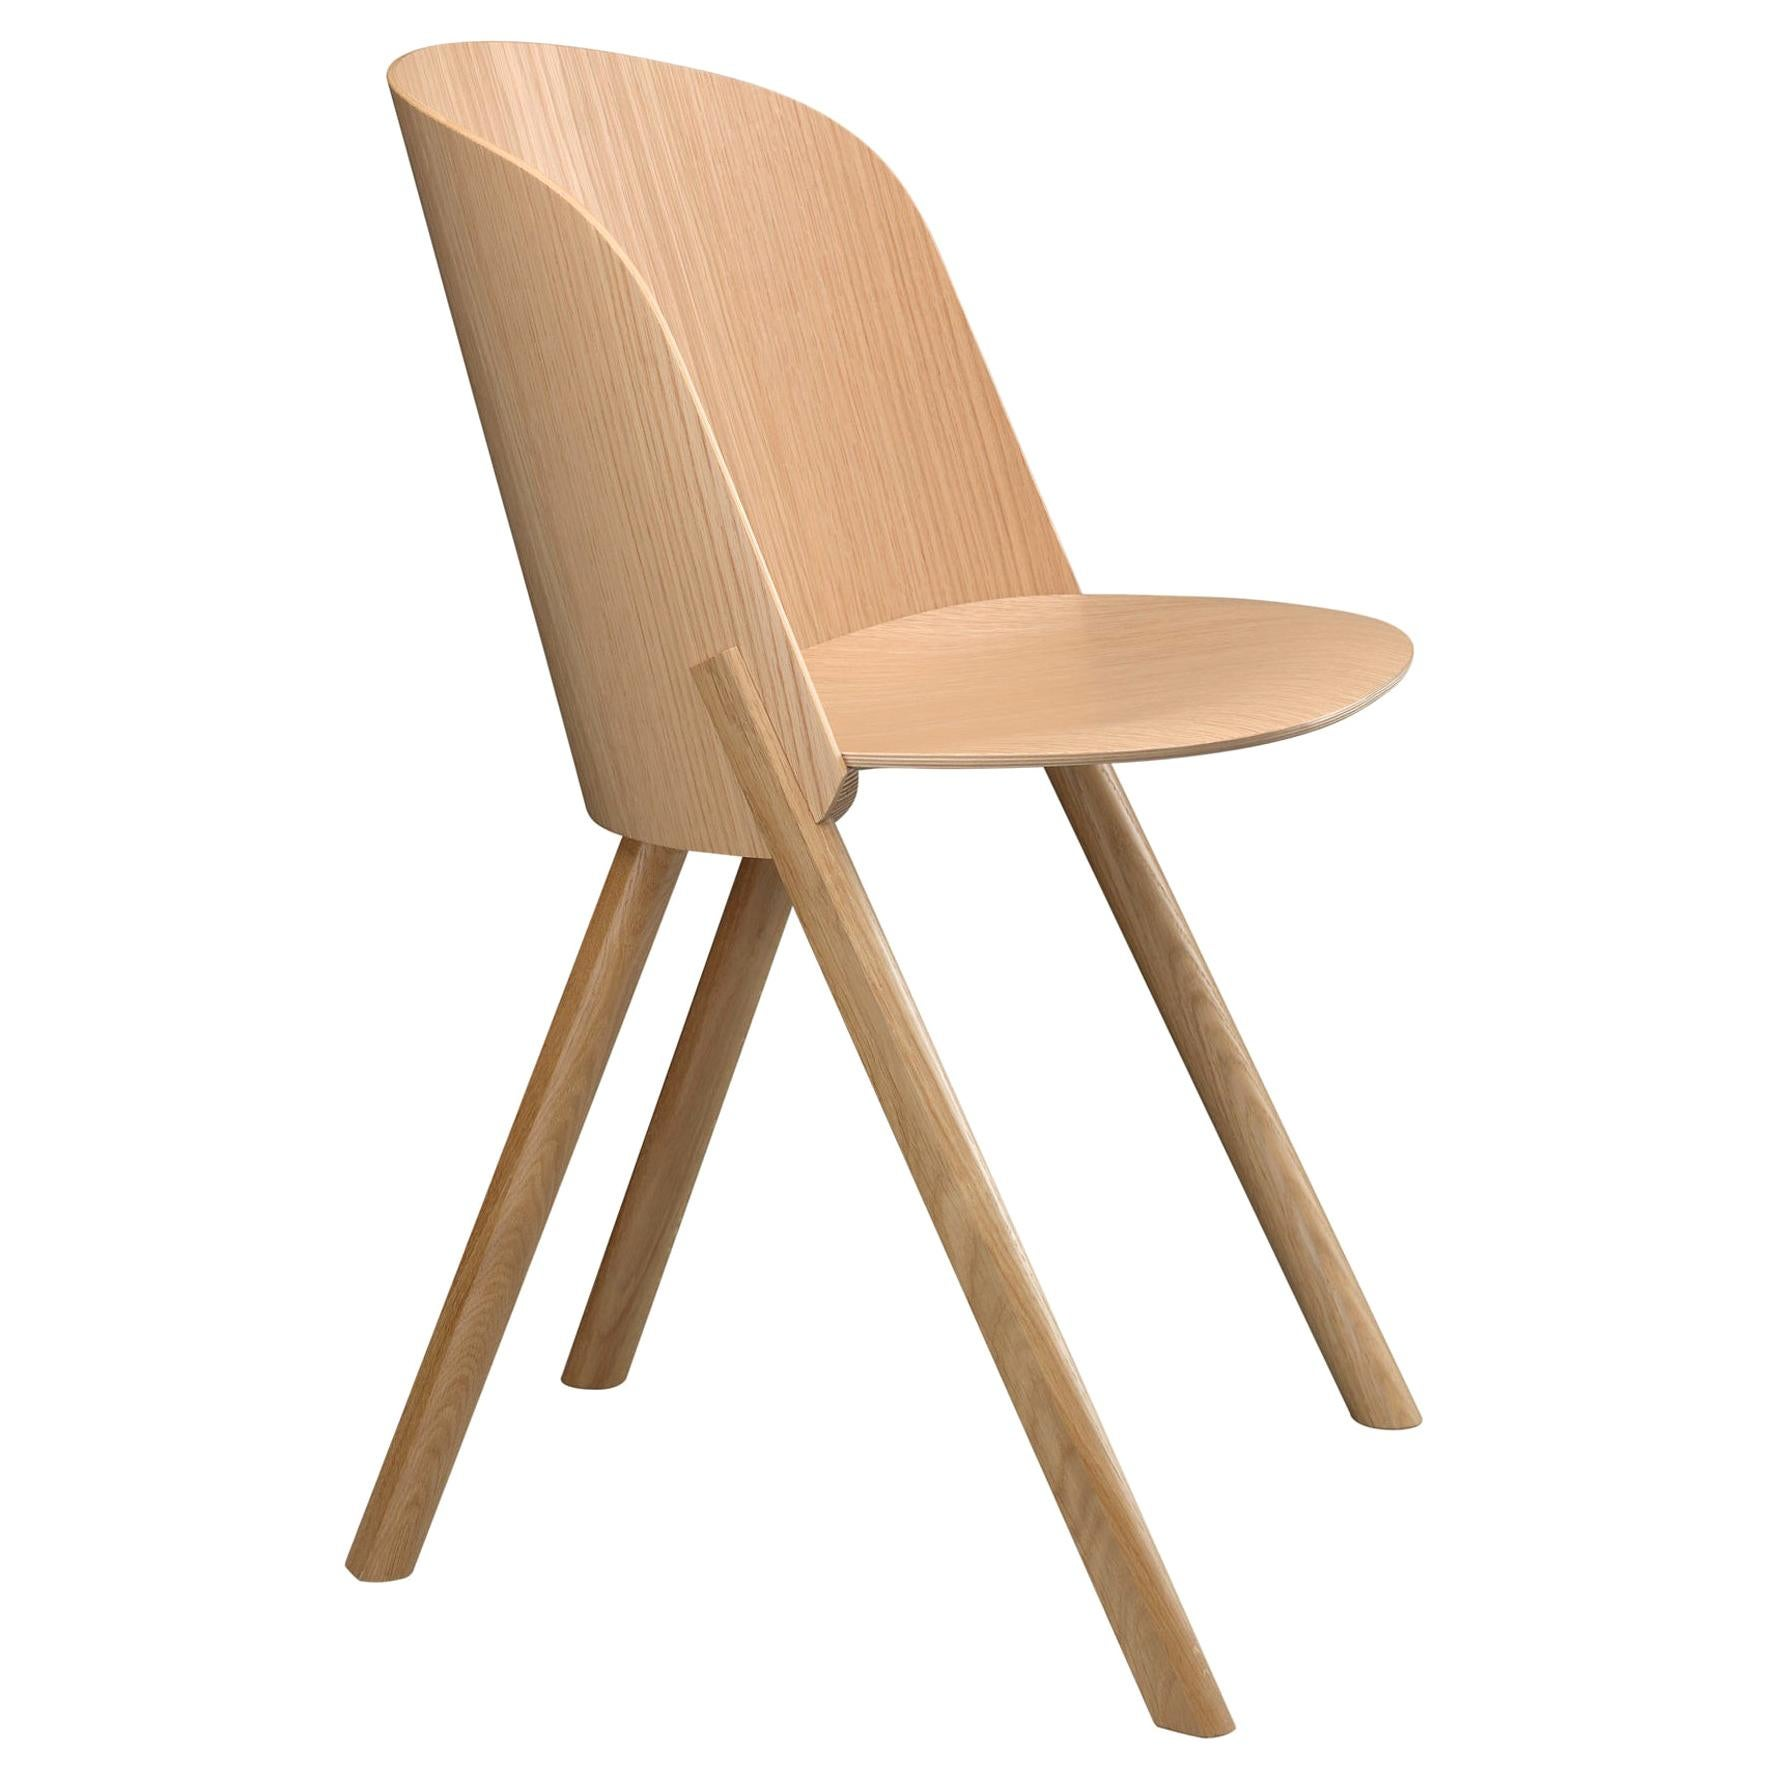 e15 This Side Chair by Stefan Diez